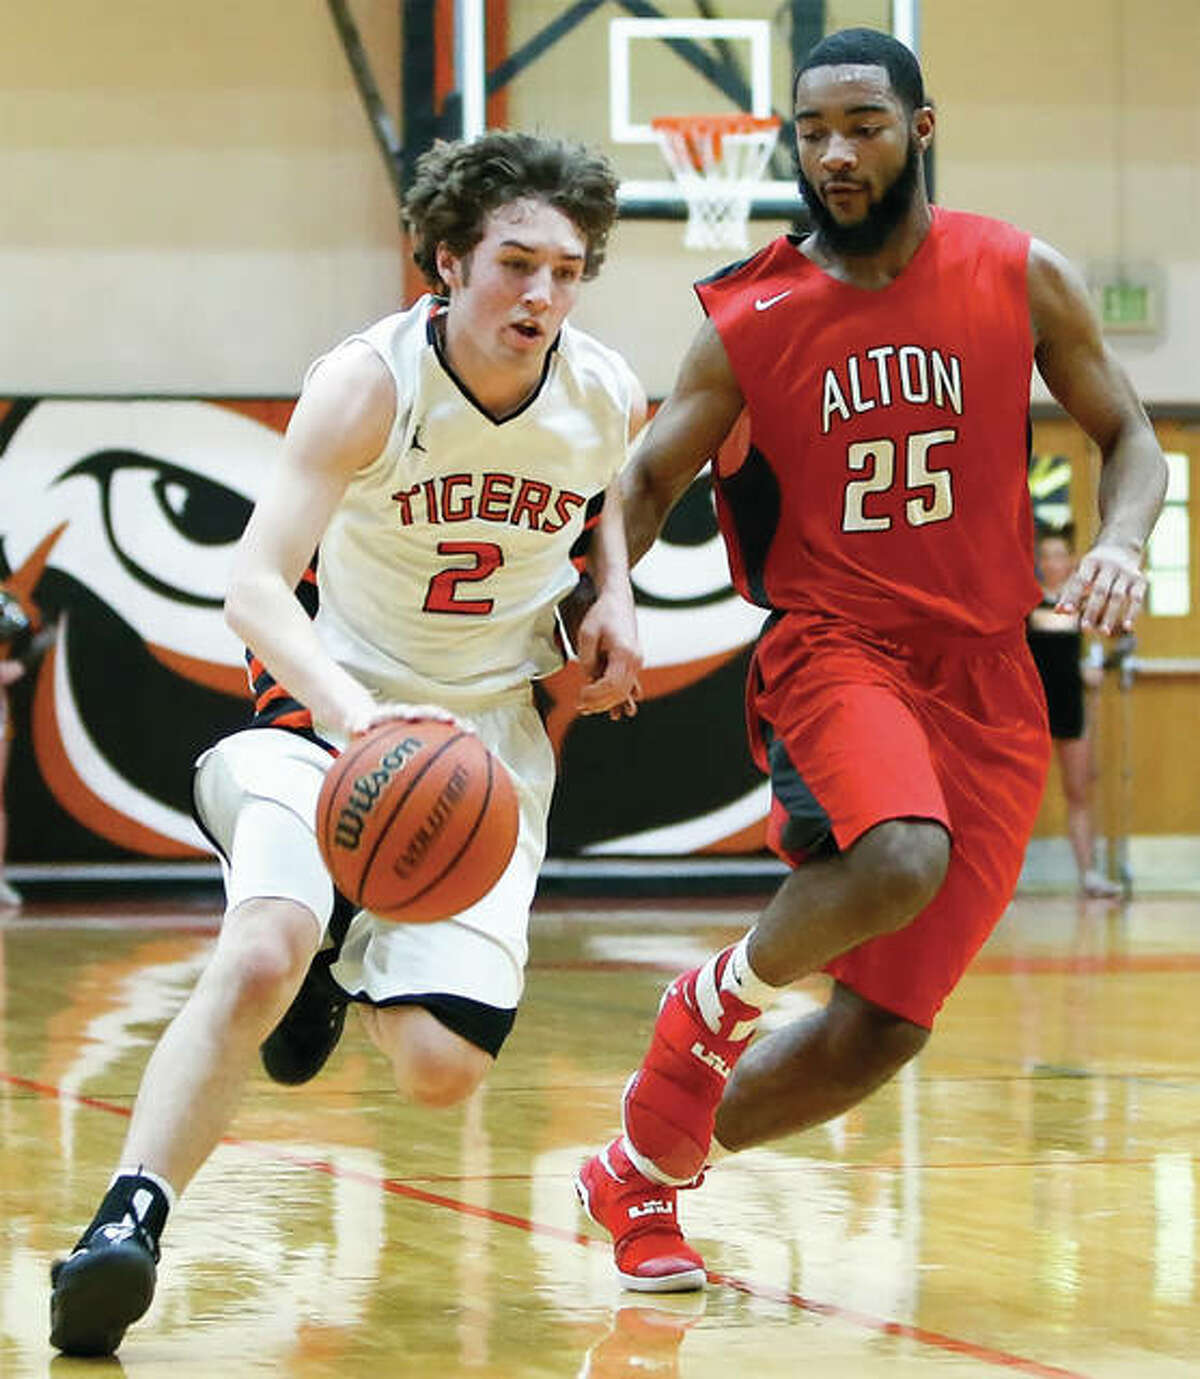 Edwardsville's Jack Marinko (left), shown driving on Alton's Maurice Edwards in a game last season in Edwardsville, is one of two starters back from last season's 30-2 squad.